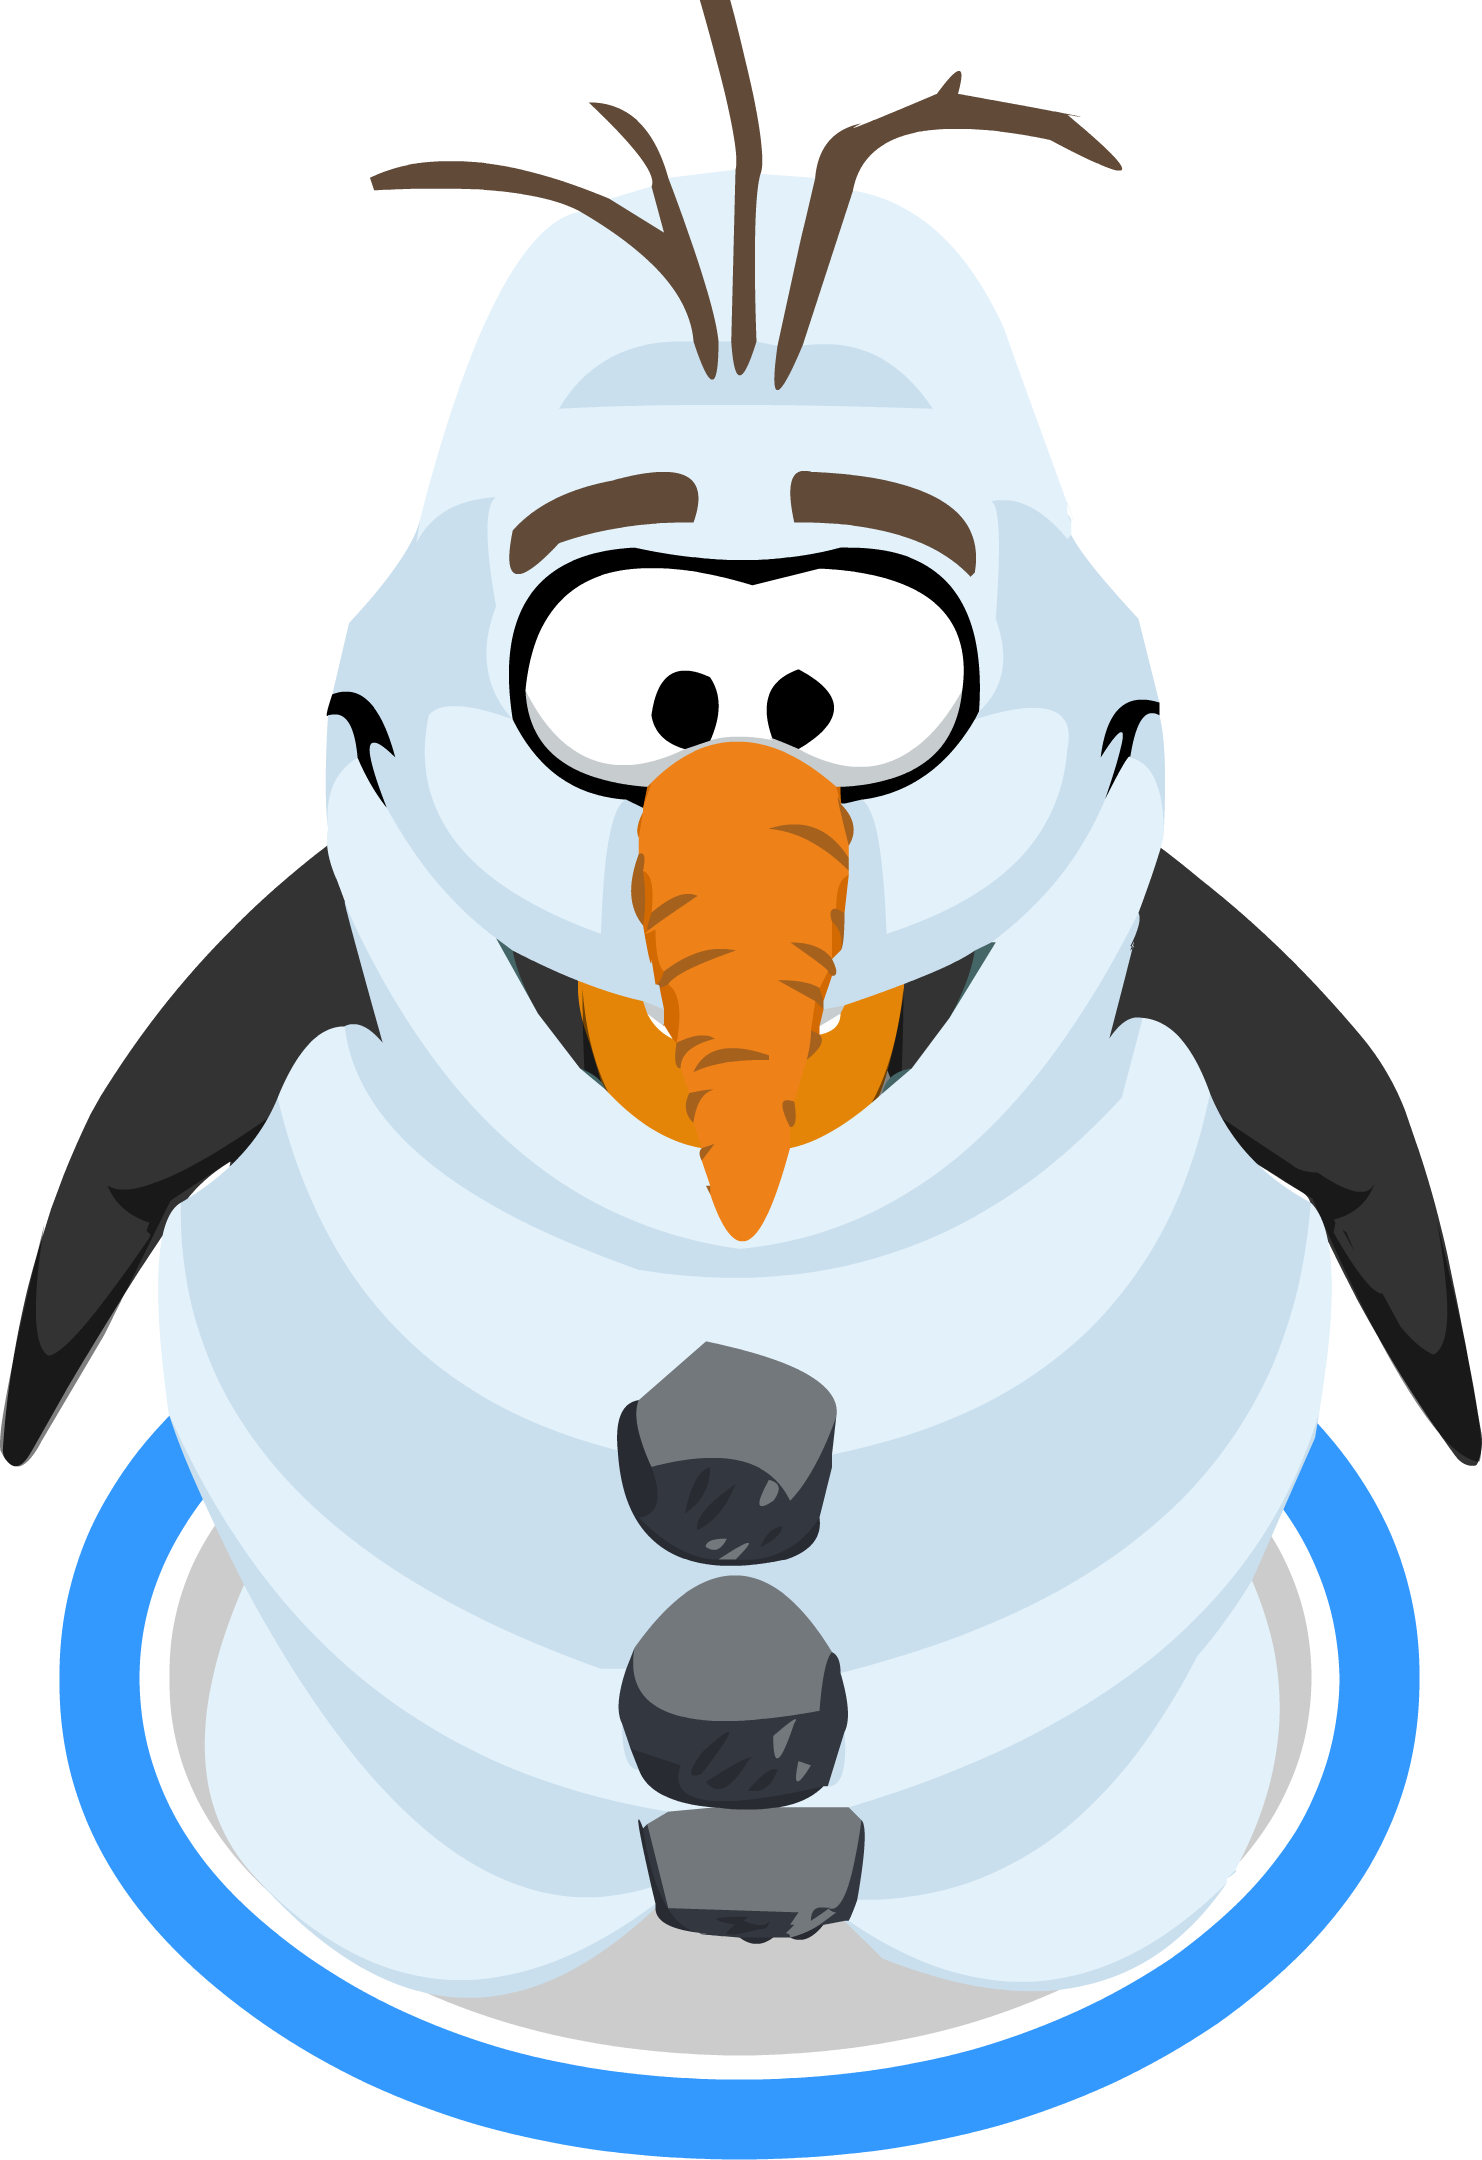 Olaf clipart beach. Image s costume ig